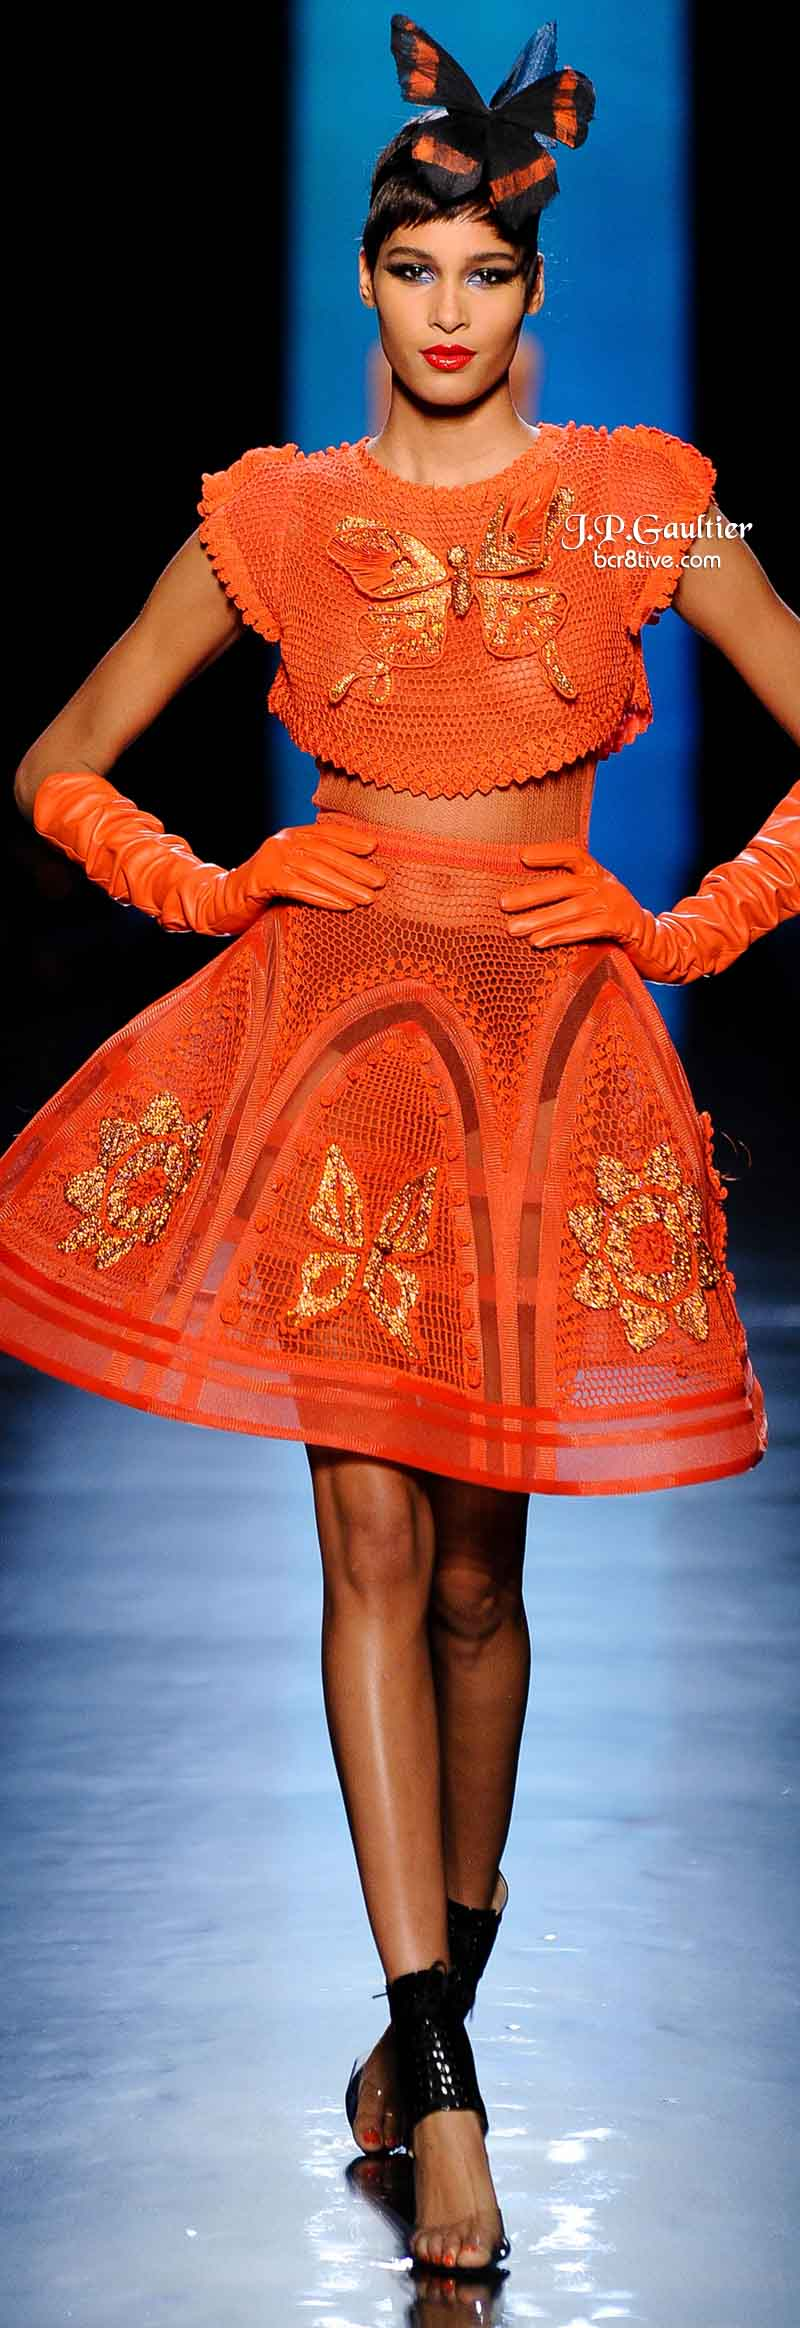 Jean Paul Gaultier Spring 2014 Couture